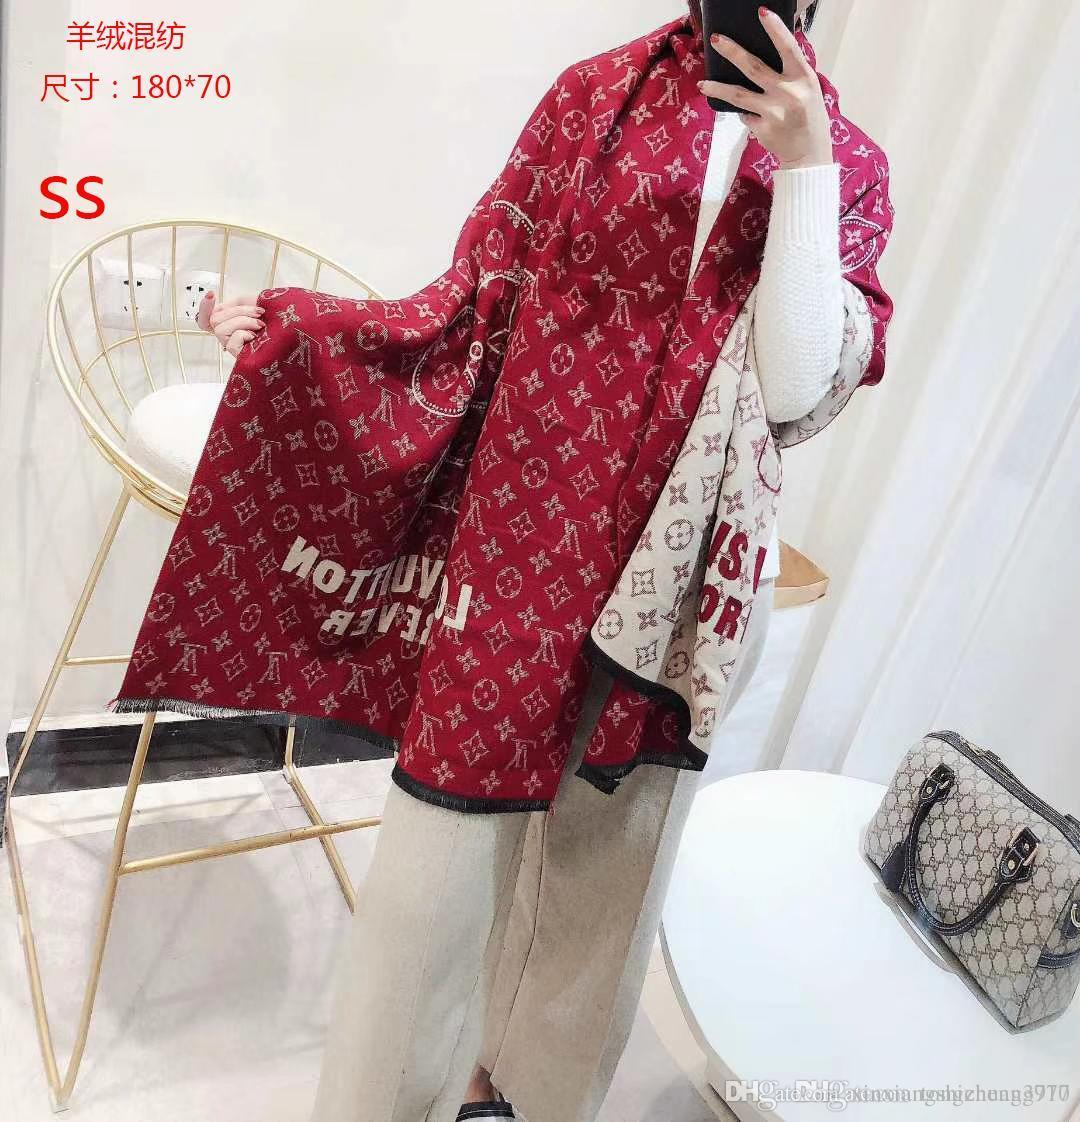 New women s fashion autumn long scarf pink with colorful patterns printed  linen soft warm_AAAAA3